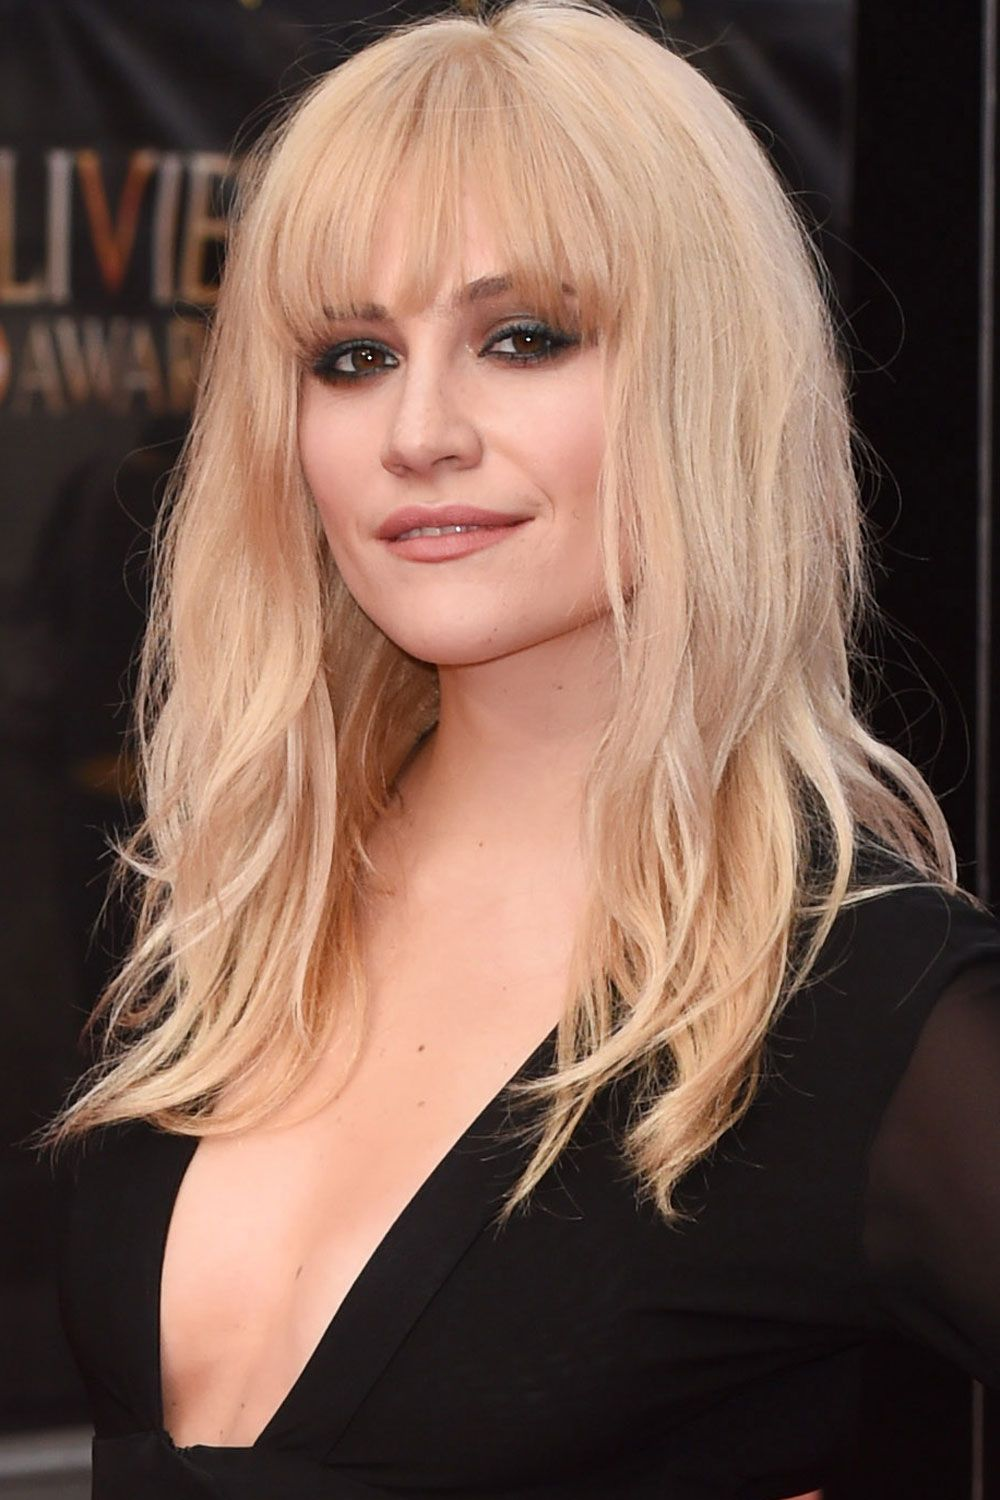 fringes: get inspired by the best celebrity bangs | pixies